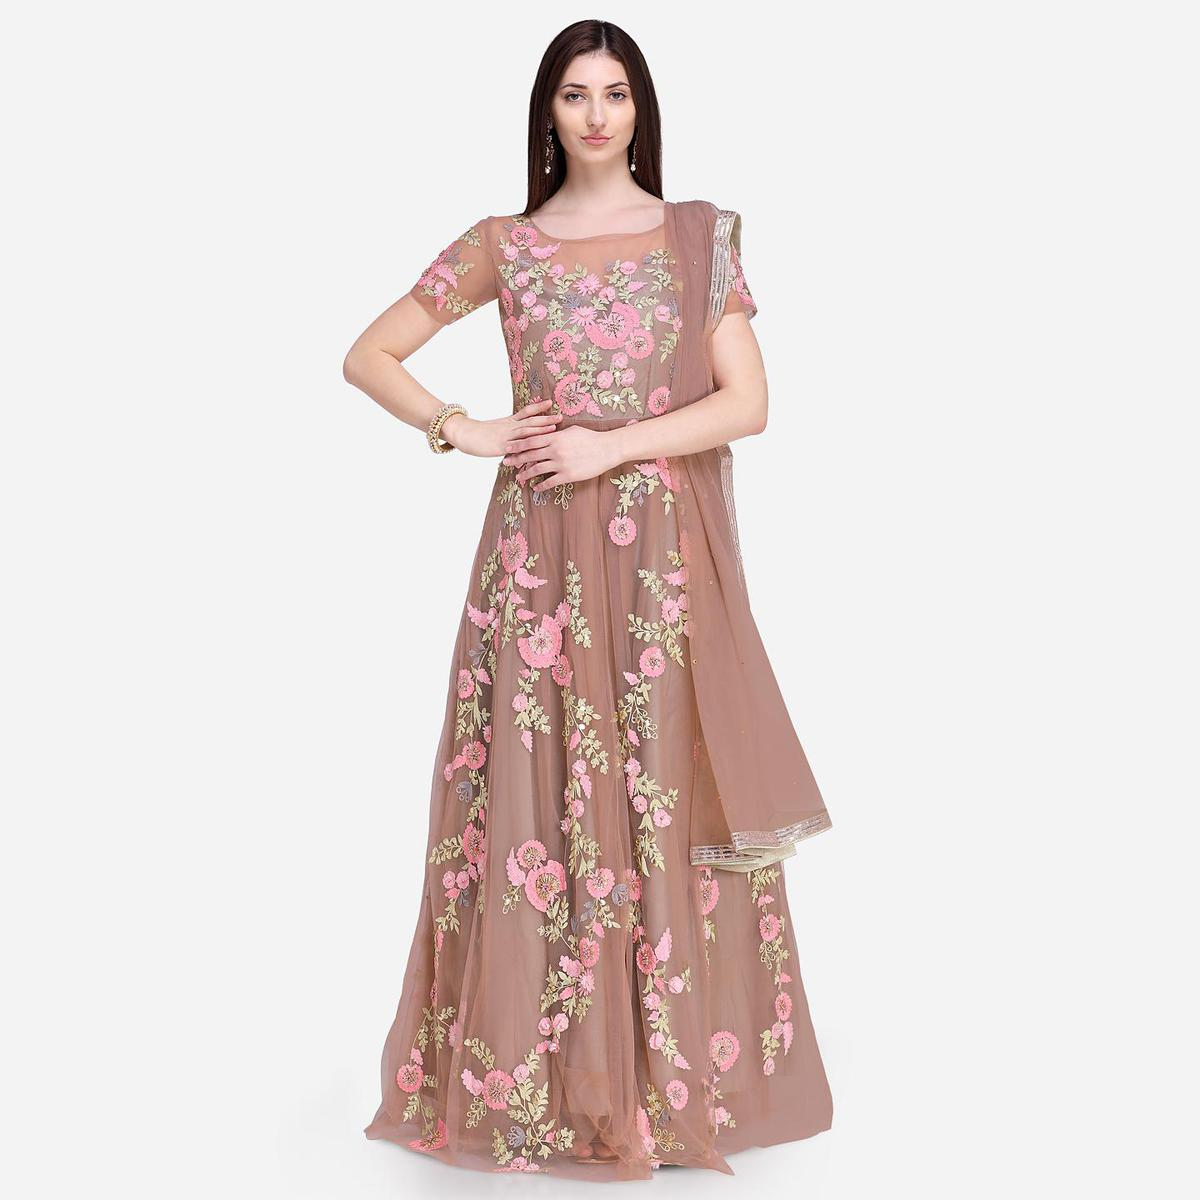 Stylee Lifestyle - Mauve Colored Party Wear Floral Embroidered Net Anarkali Suit